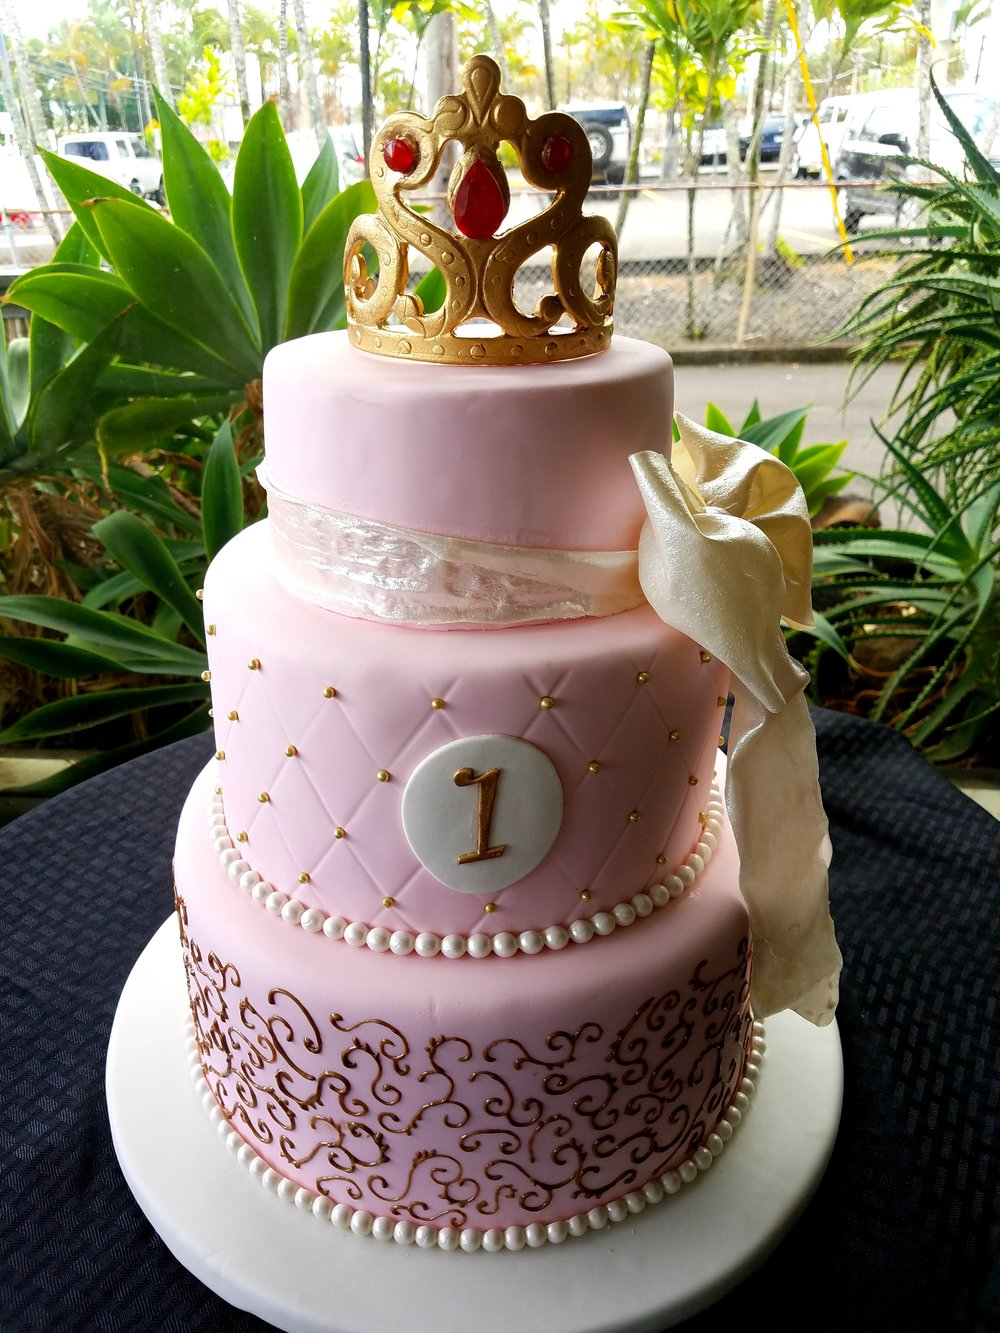 Three tier pink rolled fondant princess birthday cake with piped gold scroll work, edible sugar bow and gold sugar crown topper Hilo Hawaii Big Island Kailua-Kona